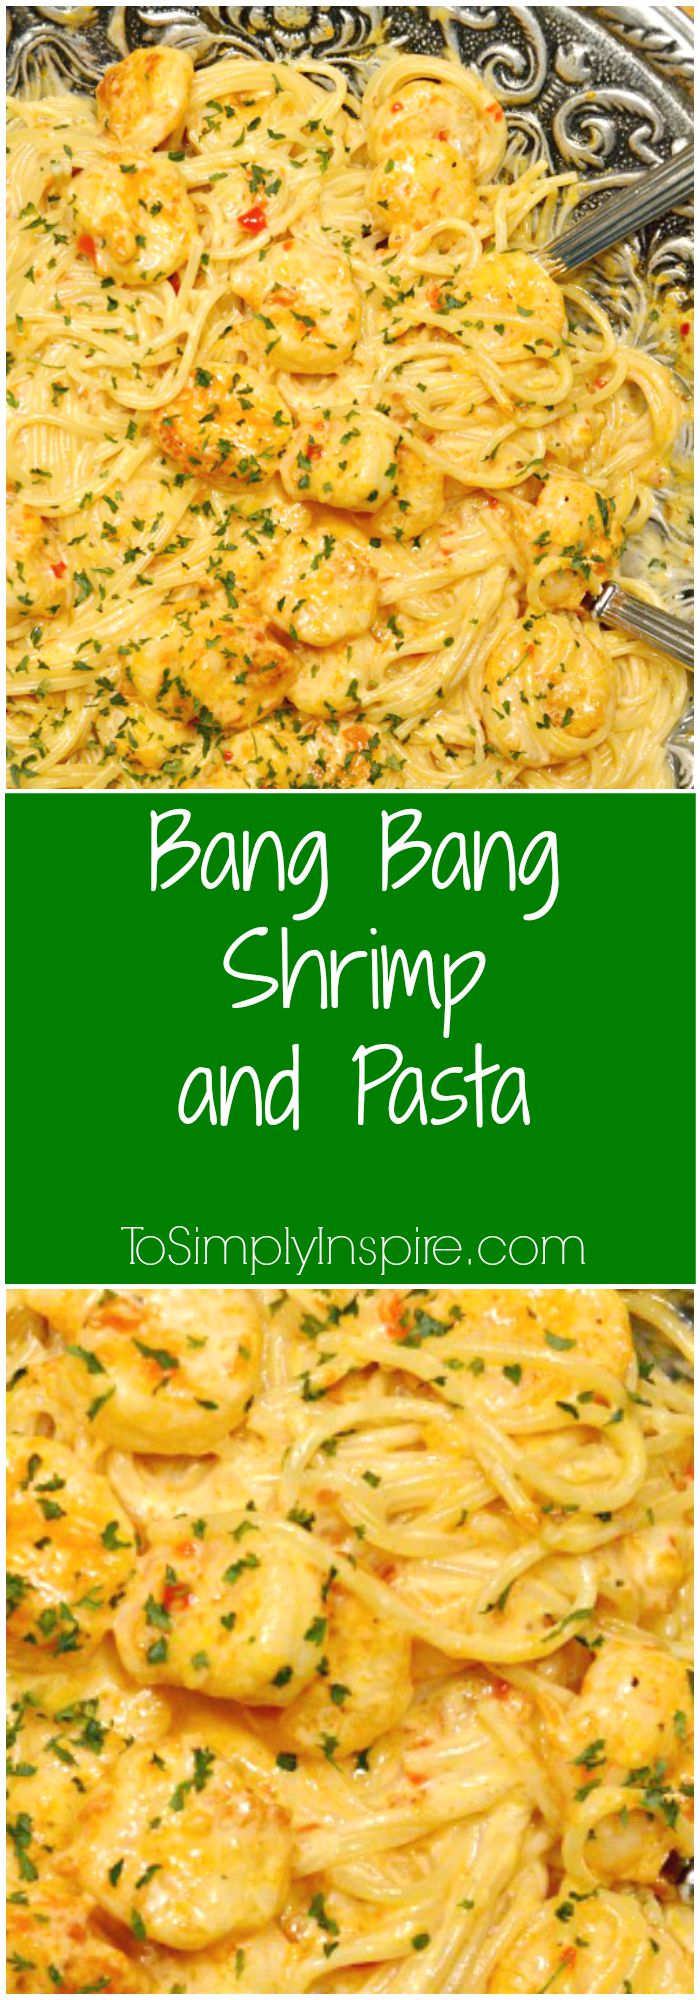 Bang Bang Shrimp and Pasta recipe served in a silver bowl with recipe name - Recipe found at ToSimplyInspire.com